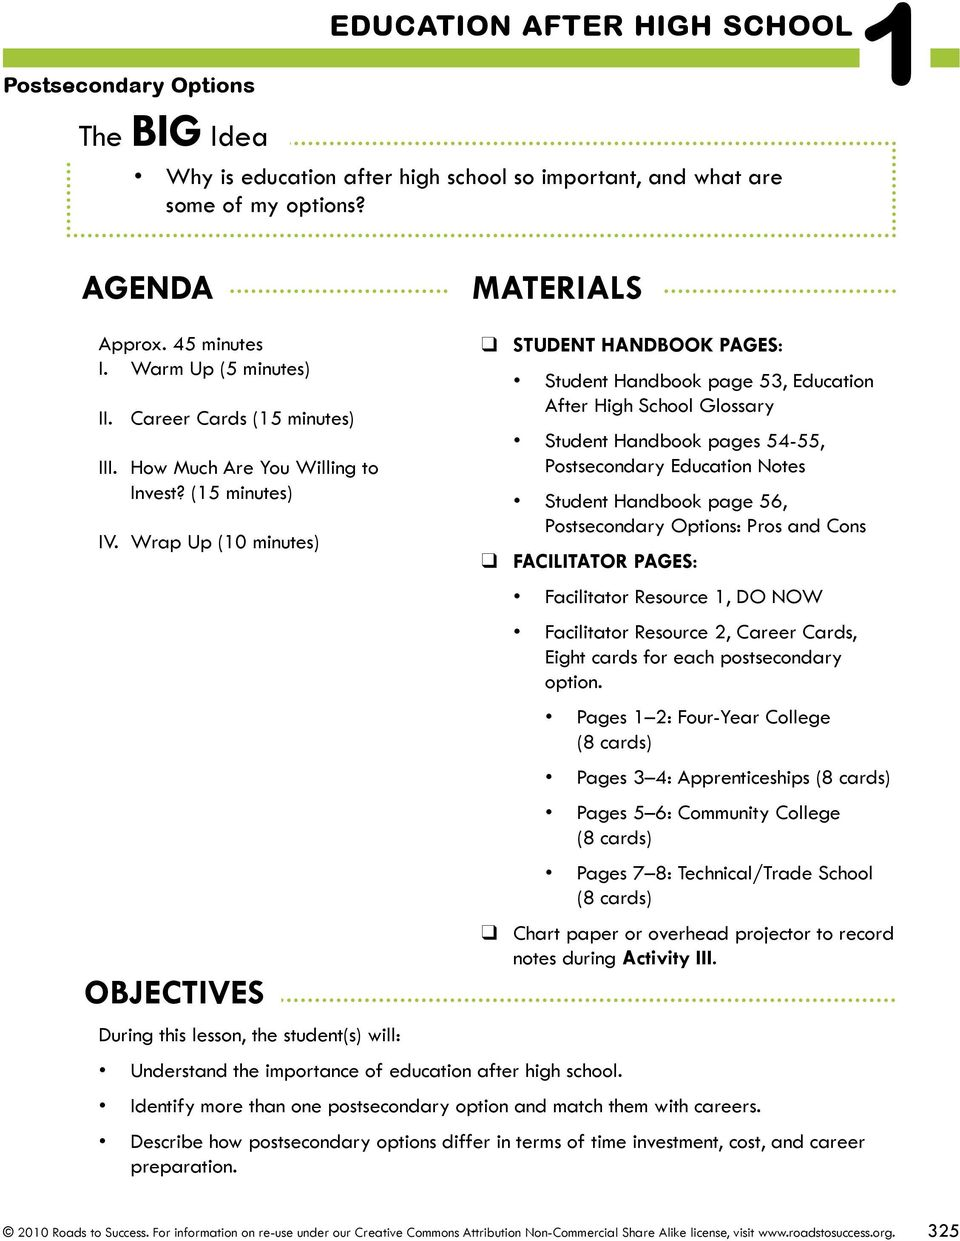 Wrap Up (10 minutes) OBJECTIVES STUDENT HANDBOOK PAGES: Student Handbook page 53, Education After High School Glossary Student Handbook pages 54-55, Postsecondary Education Notes Student Handbook